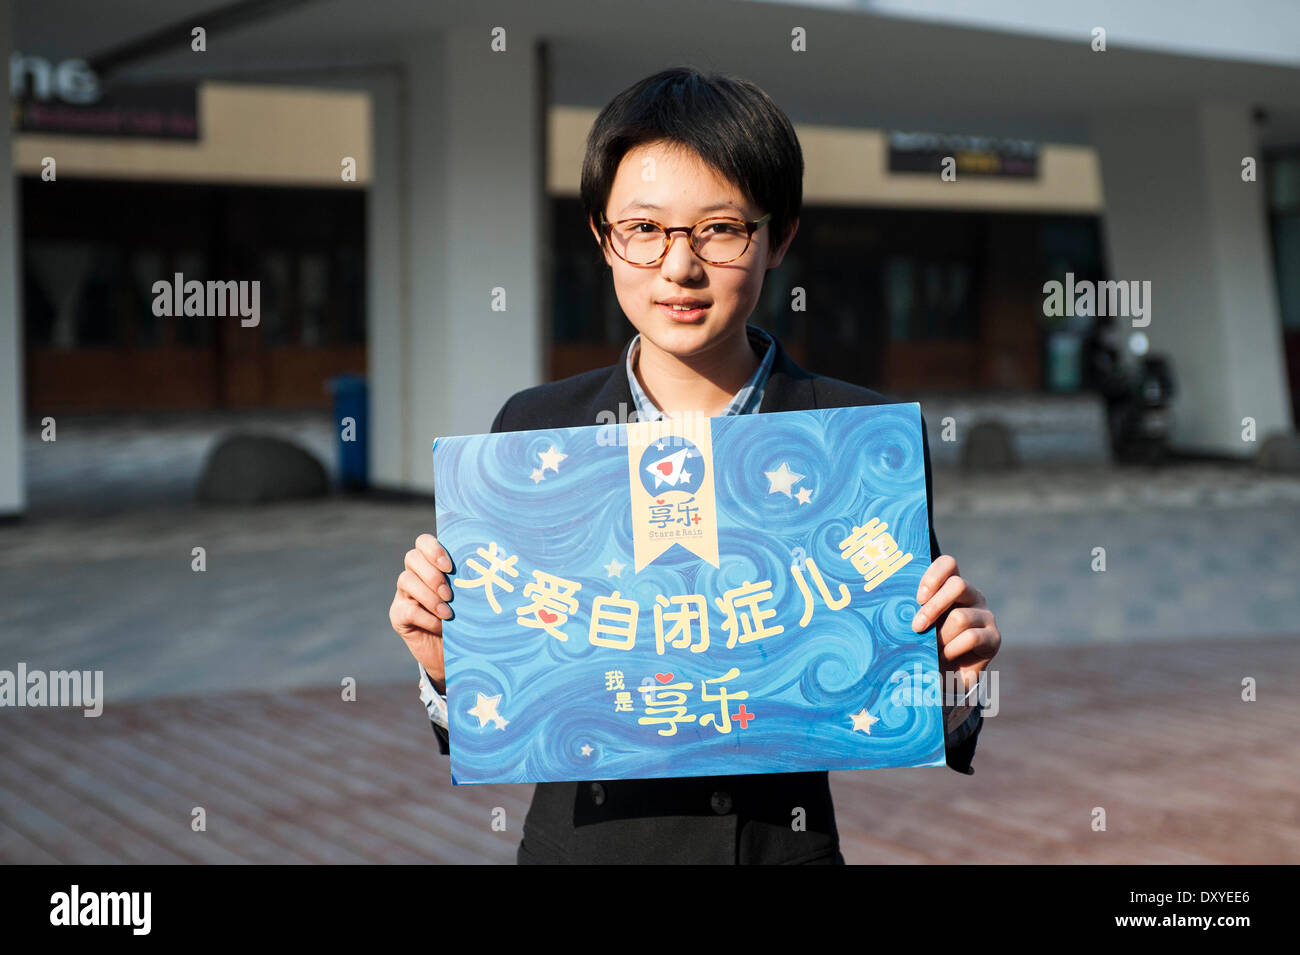 (140402) -- BEIJING, April 2, 2014 (Xinhua) -- Yi Yuxi, a junior high school student volunteer for autistic children, holds a placard reading 'care for autistic children' in Beijing, capital of China, March 15, 2014. The World Autism Awareness Day falls on April 2, drawing attention to the pervasive developmental disorder that affects tens of millions of children around the globe.    (Xinhua/Zhang Keren) (wf) - Stock Image